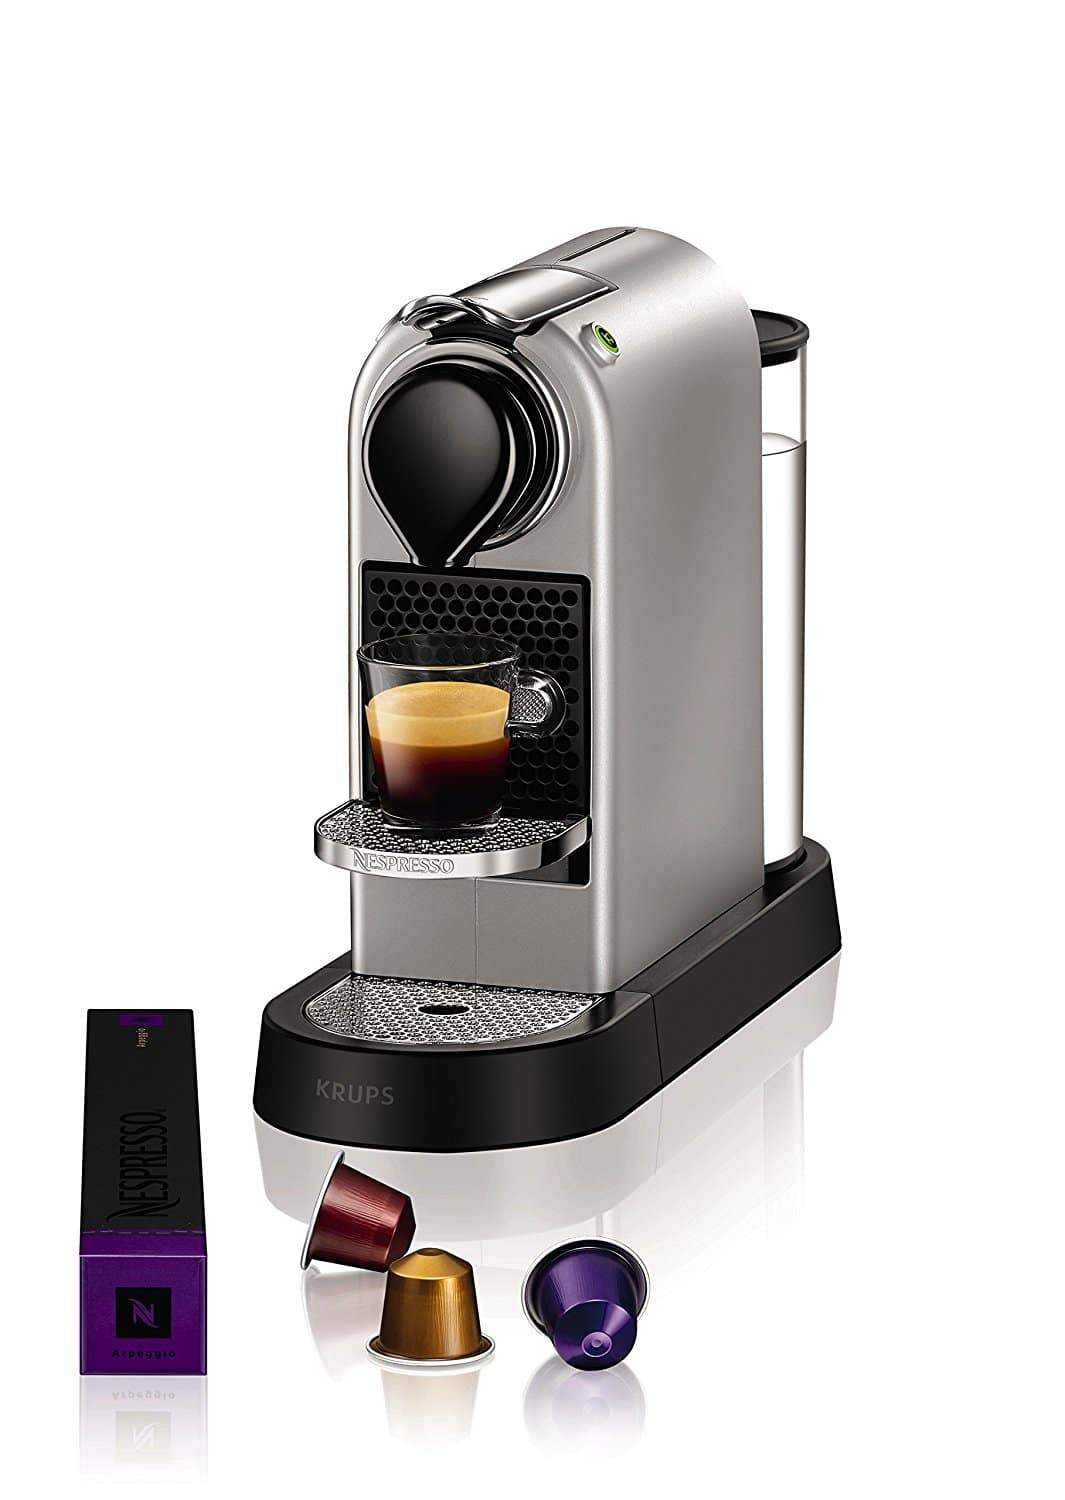 krups citiz cafeti re nespresso machine espresso test et avis. Black Bedroom Furniture Sets. Home Design Ideas